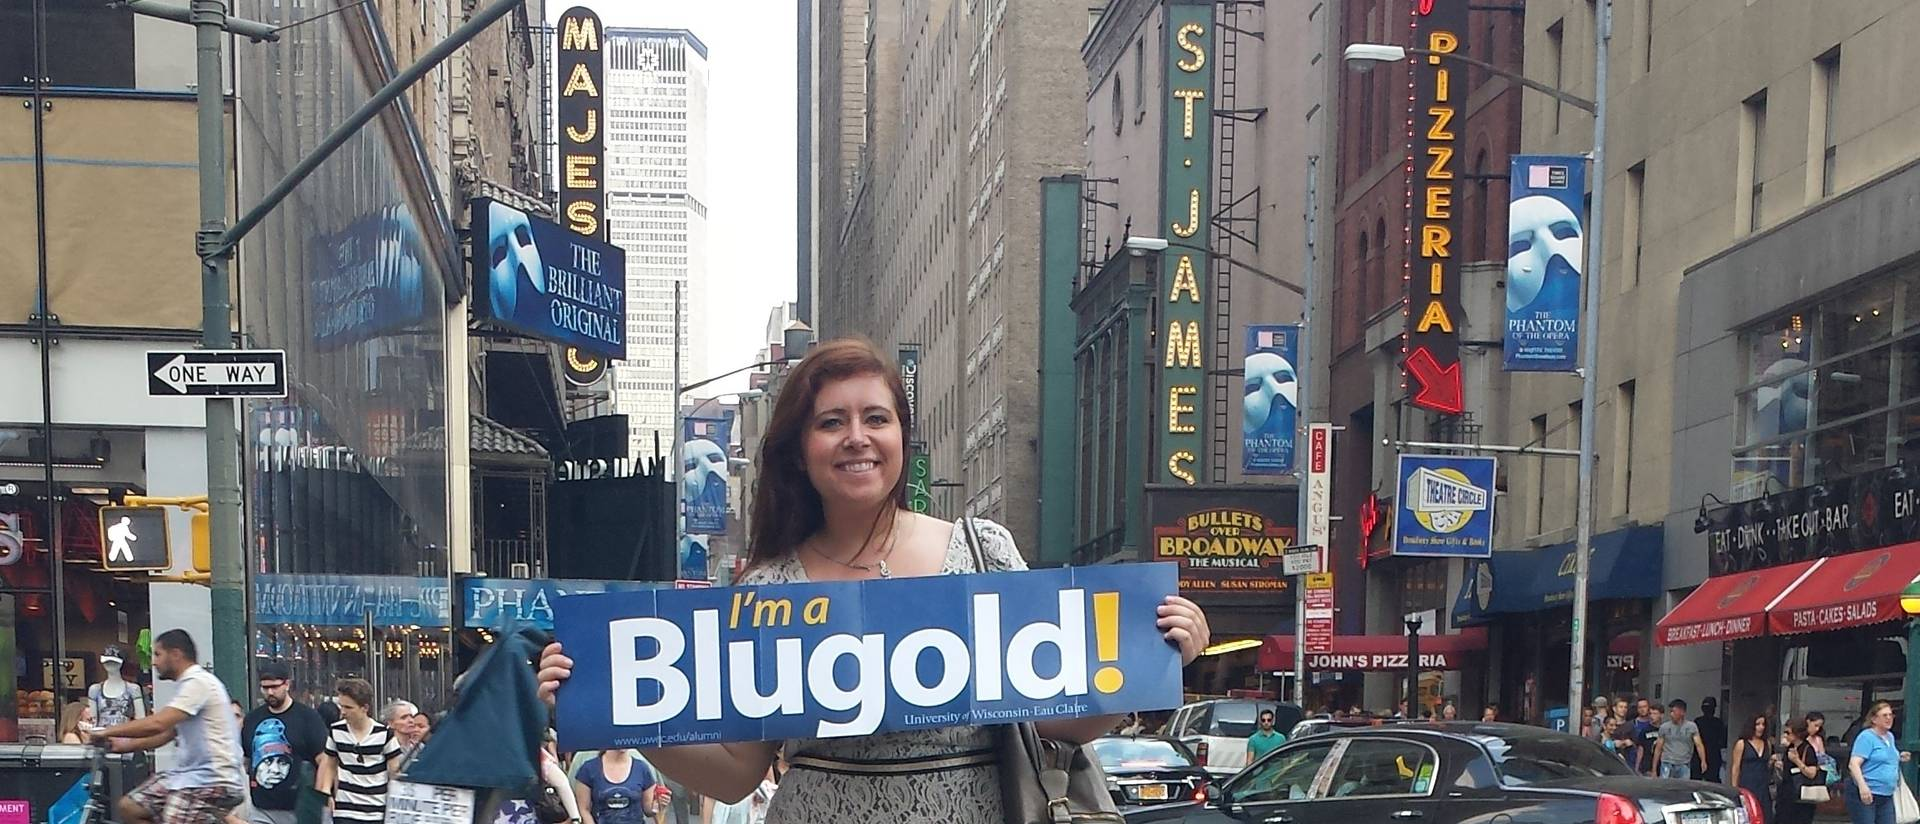 Heidi Joosten shows Blugold pride in New York City